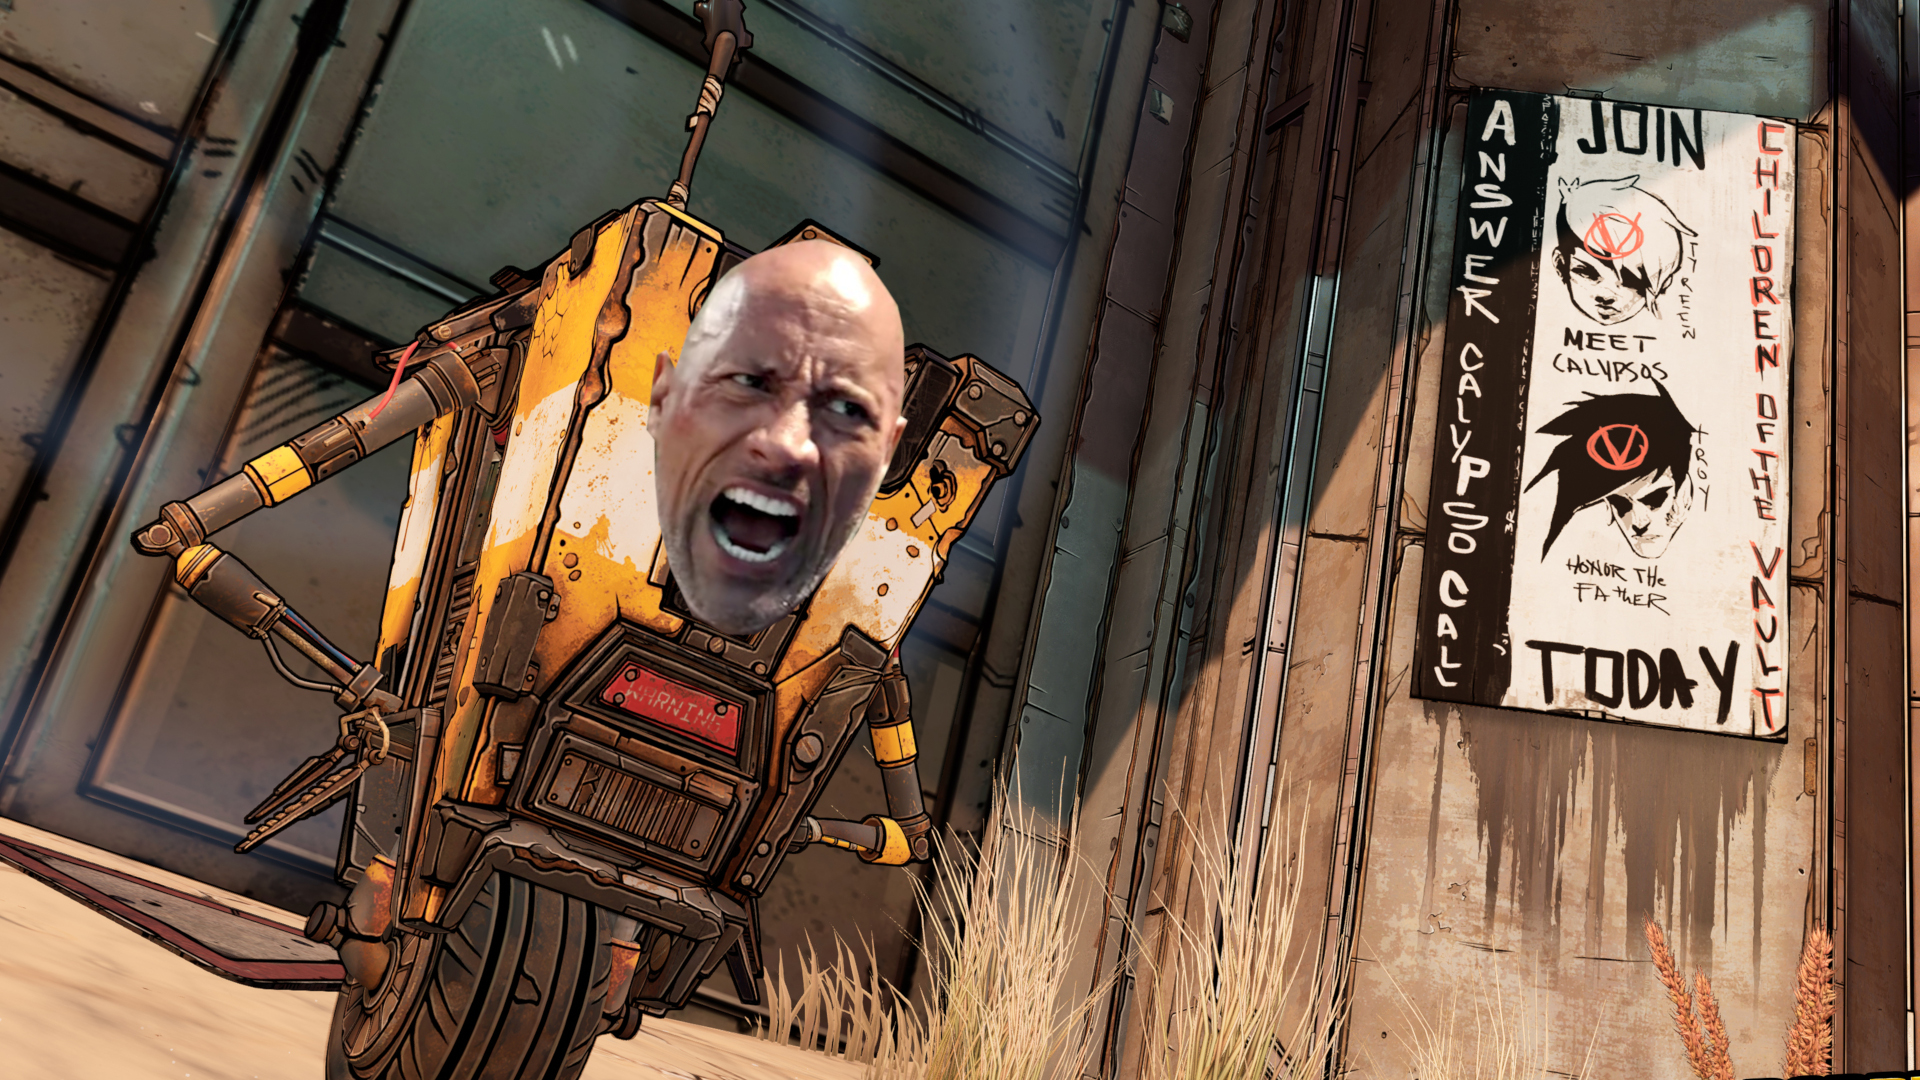 Borderlands 3's creative director wants The Rock to play Claptrap in the movie   PC Gamer